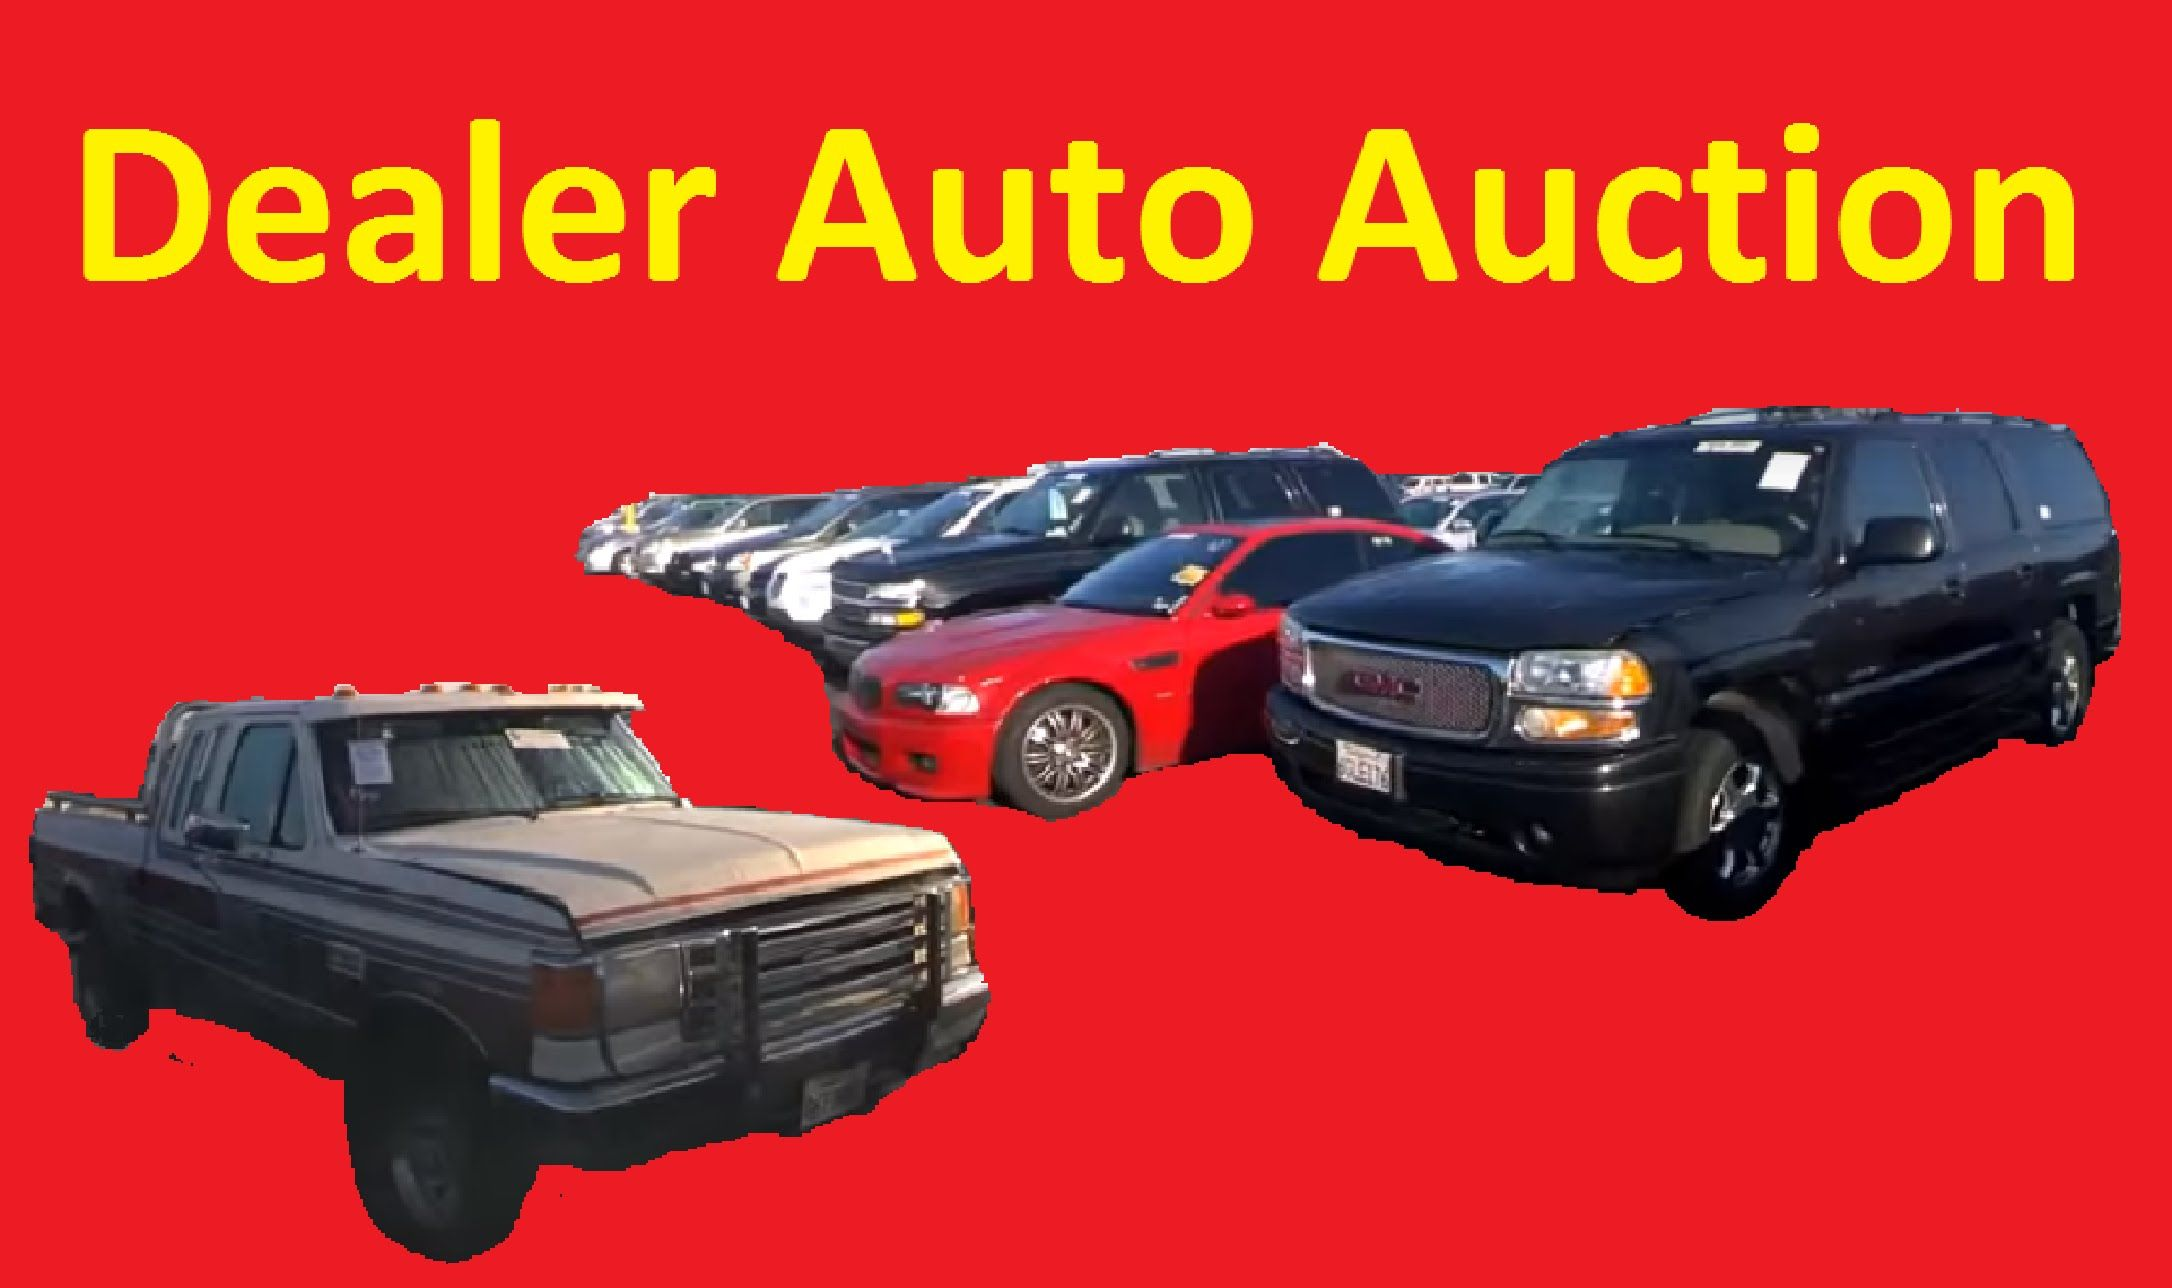 Dealer Only Auto Auction Car Preview Video Wholesale Training 1